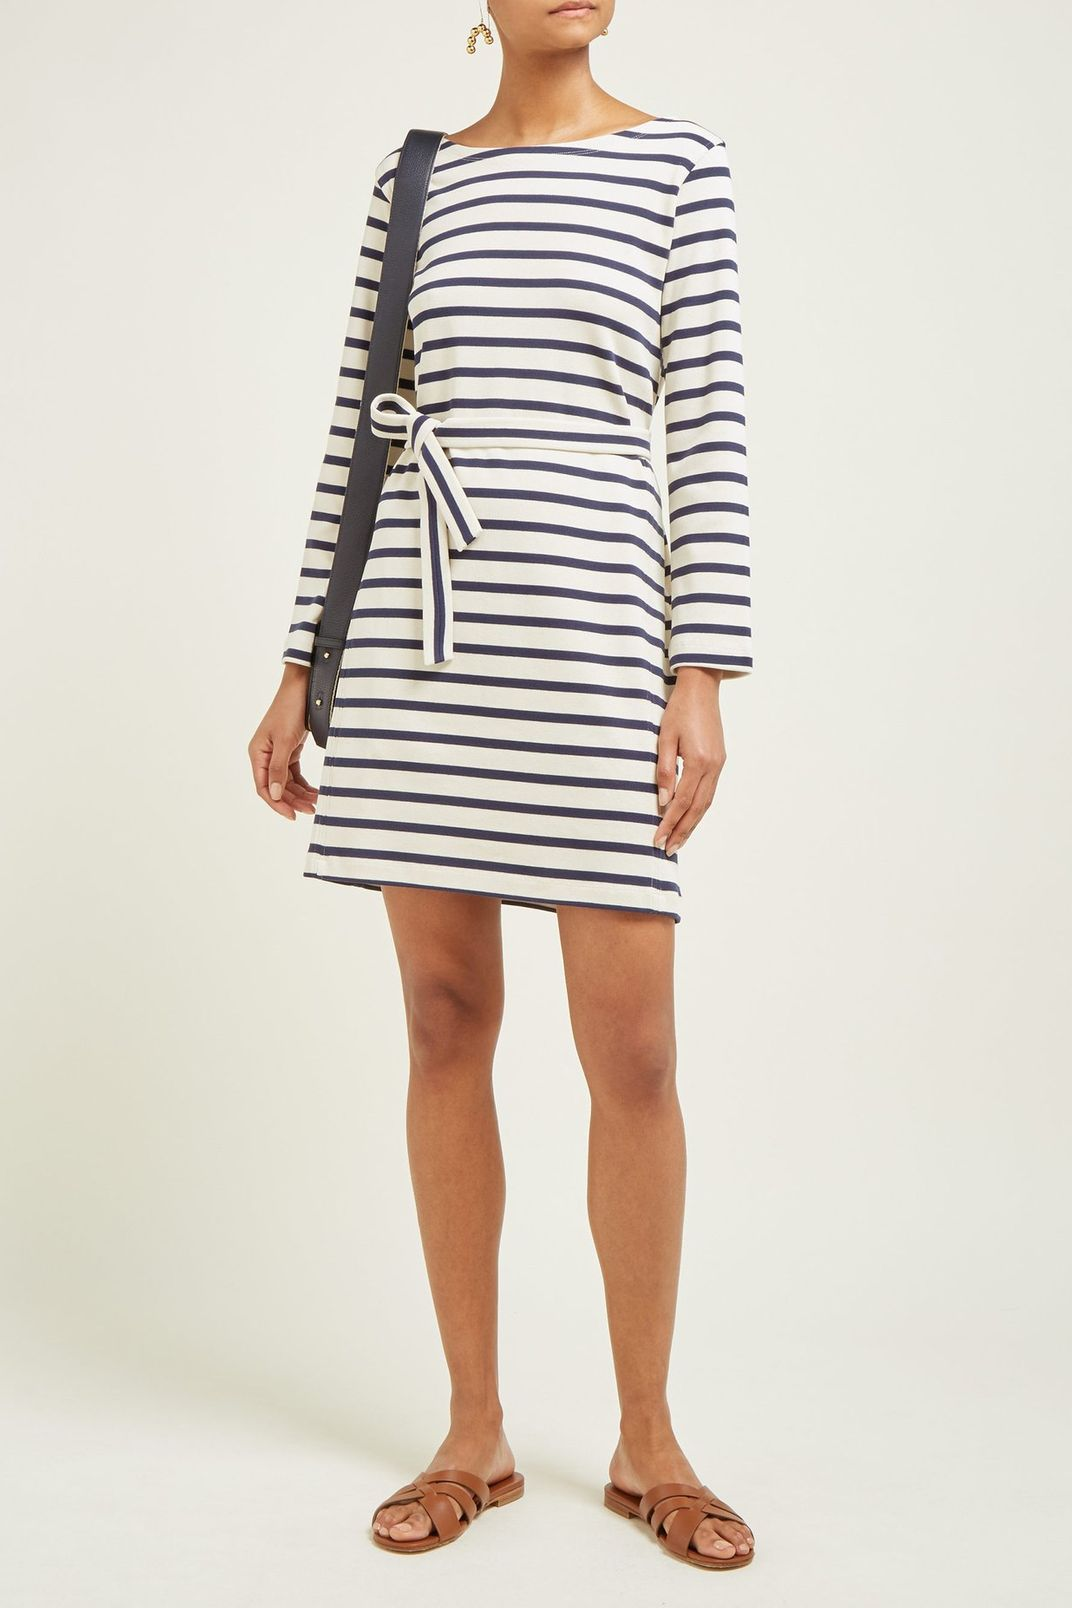 A.P.C. Instant Striped Cotton-Jersey Dress